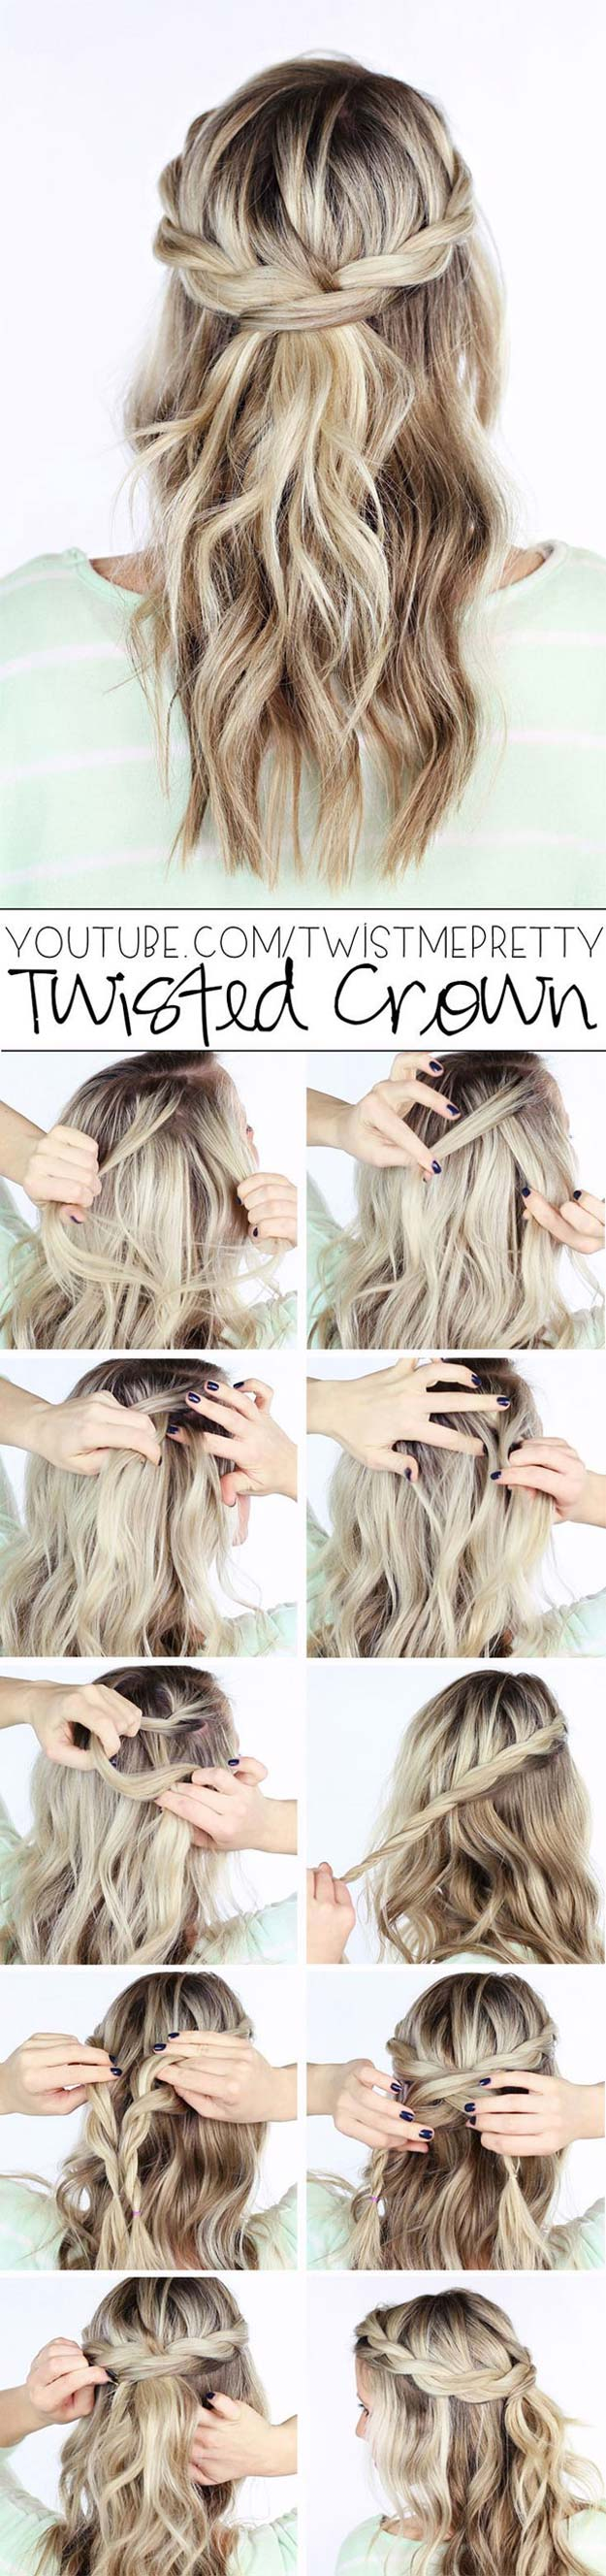 8 cool braid tutorials from pinterest that will actually teach you.